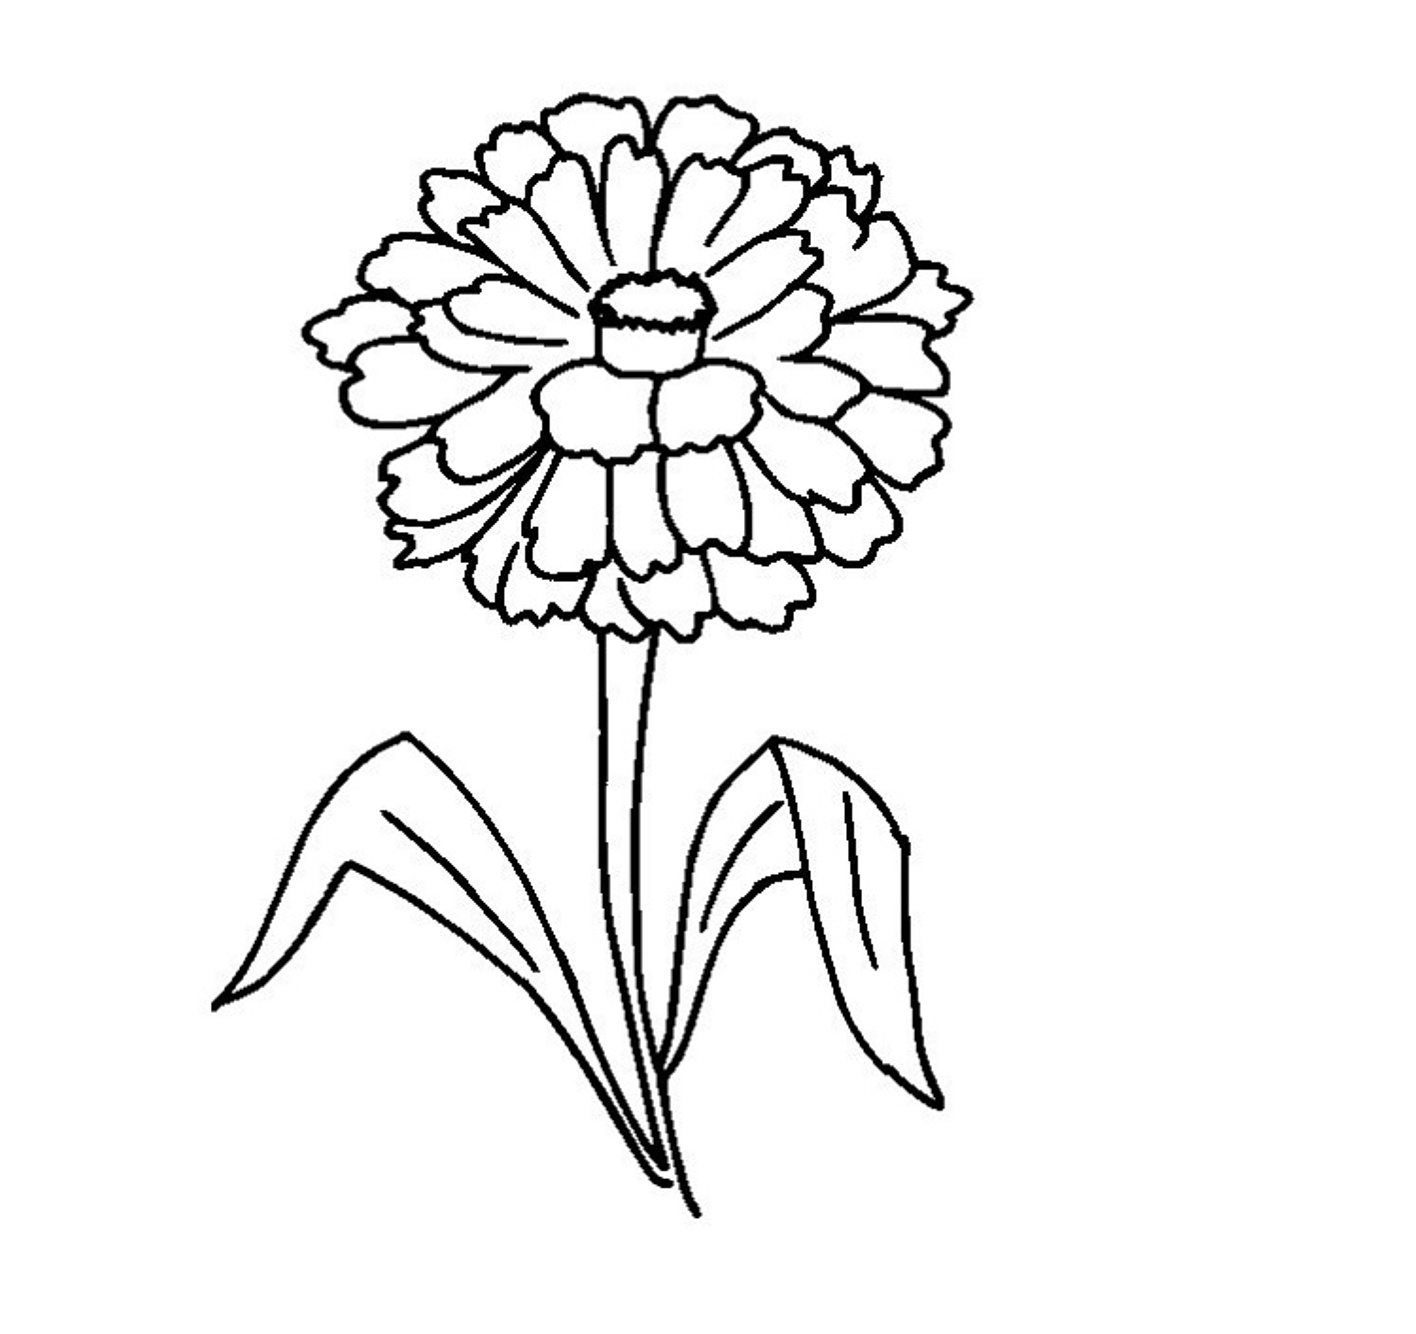 1416x1334 Amazing Zinnia Coloring Page Printable Pic Of Flower Concept